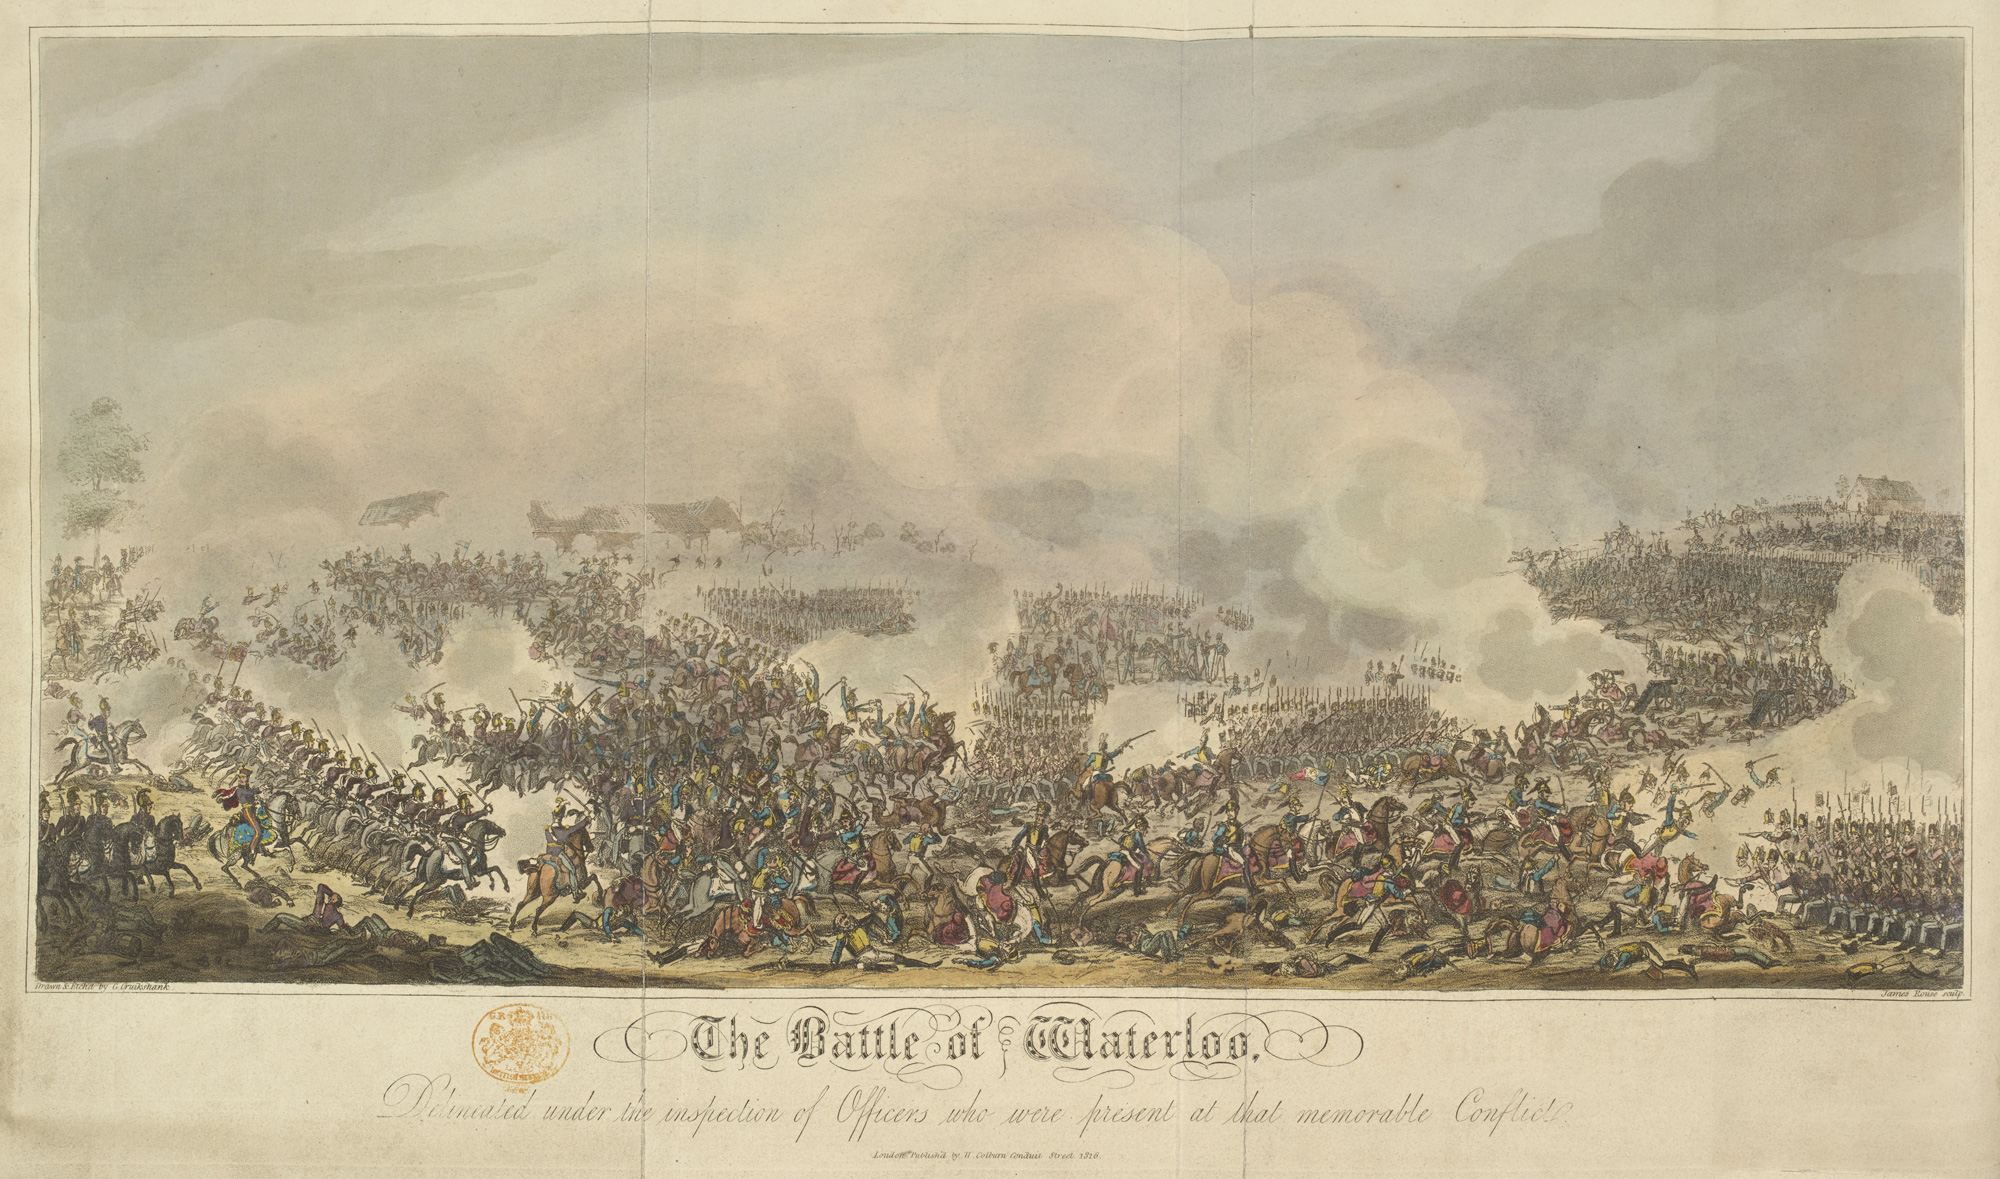 Illustration of the Battle of Waterloo